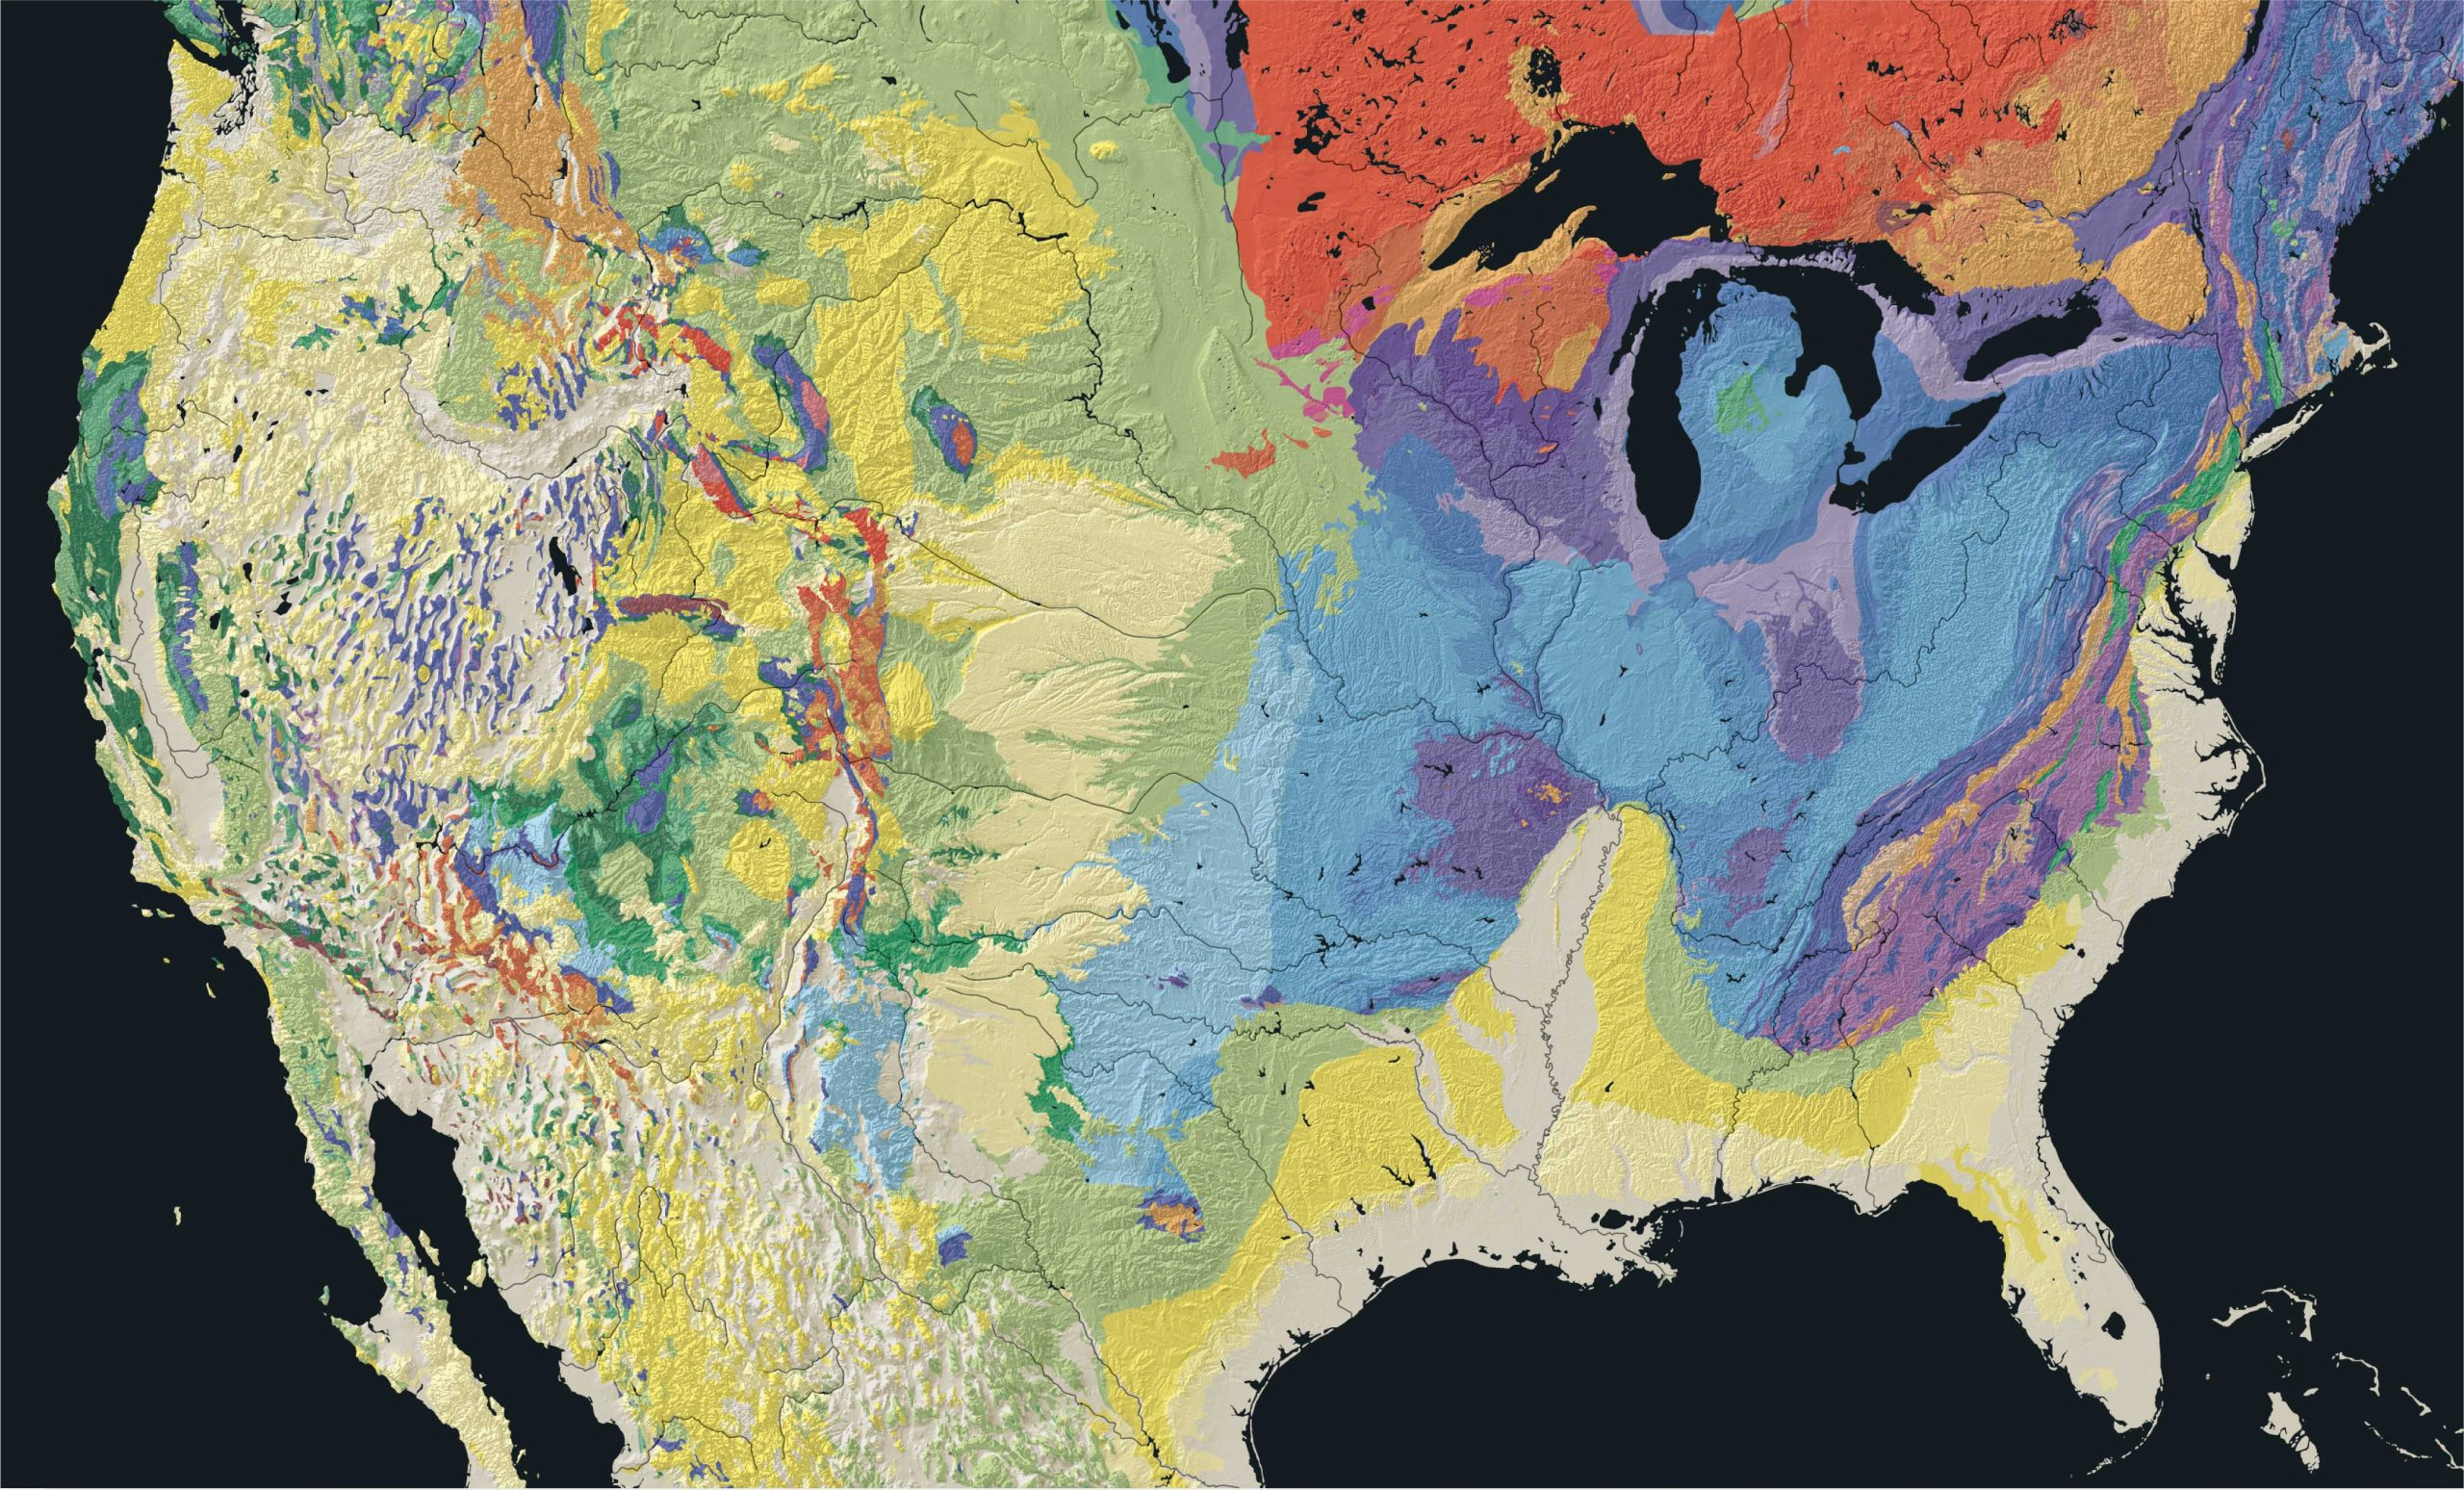 Map with varying colors representing different ages of rocks throughout the United States.